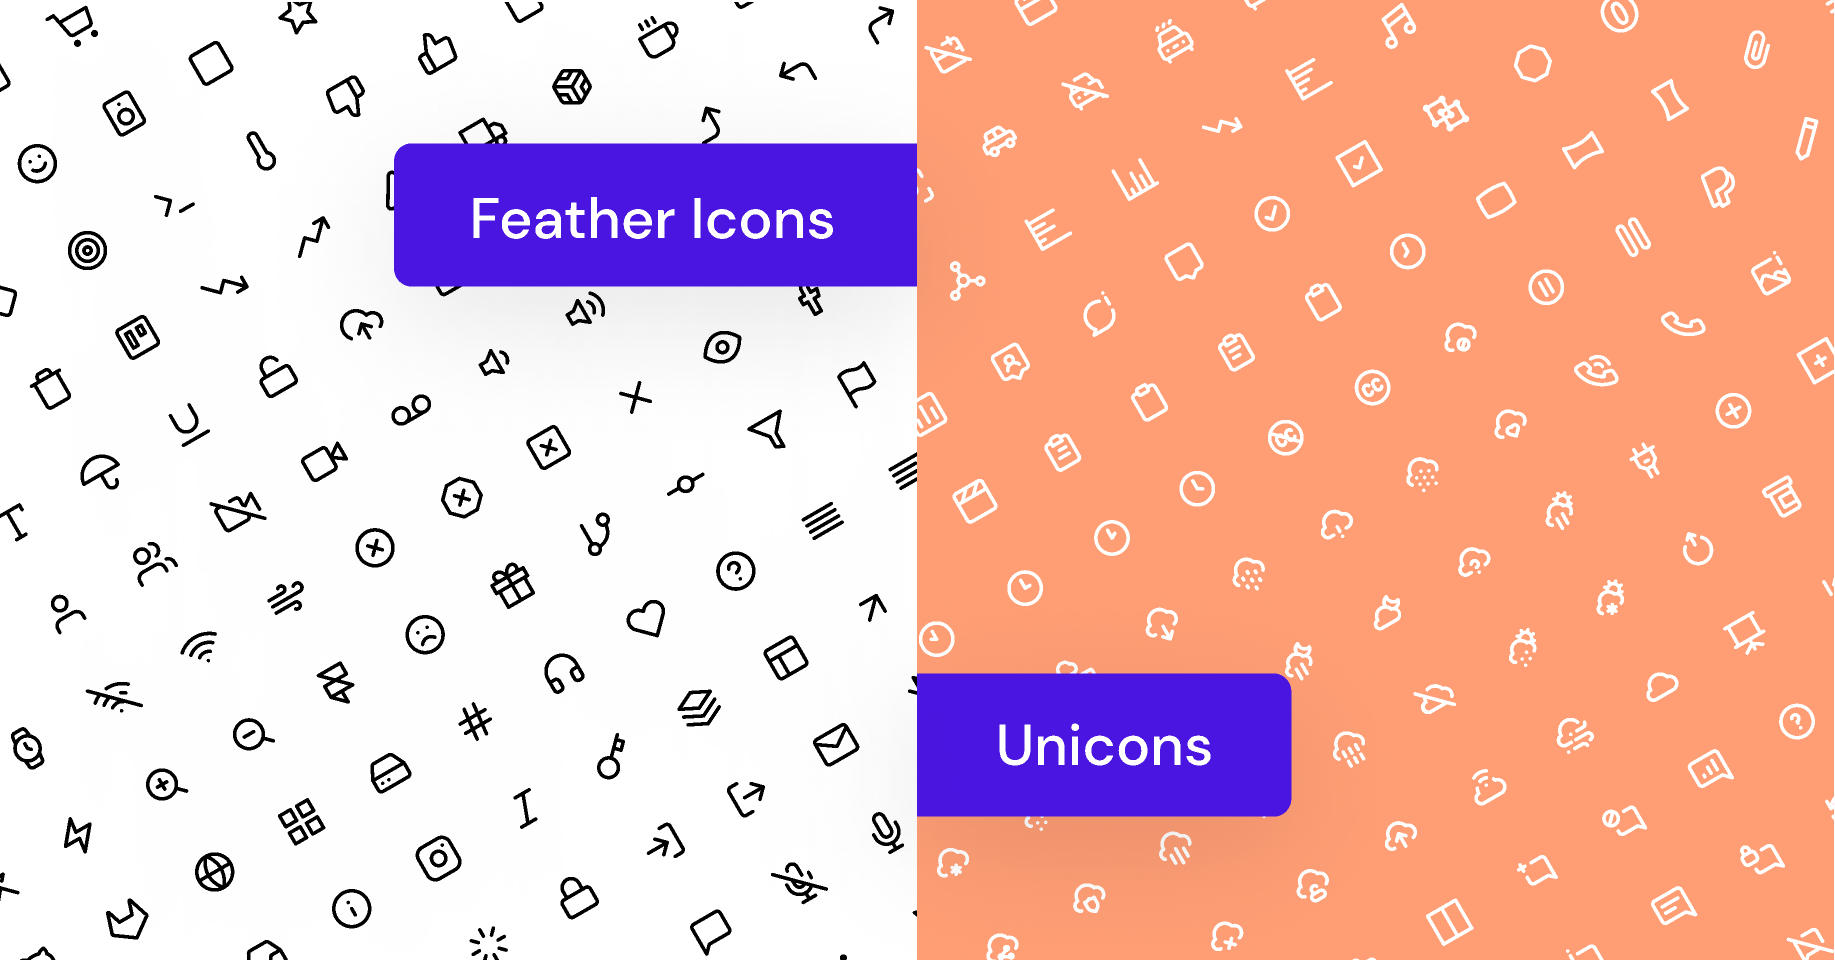 Frebie 1000+ Feather Icons & Unicons Library